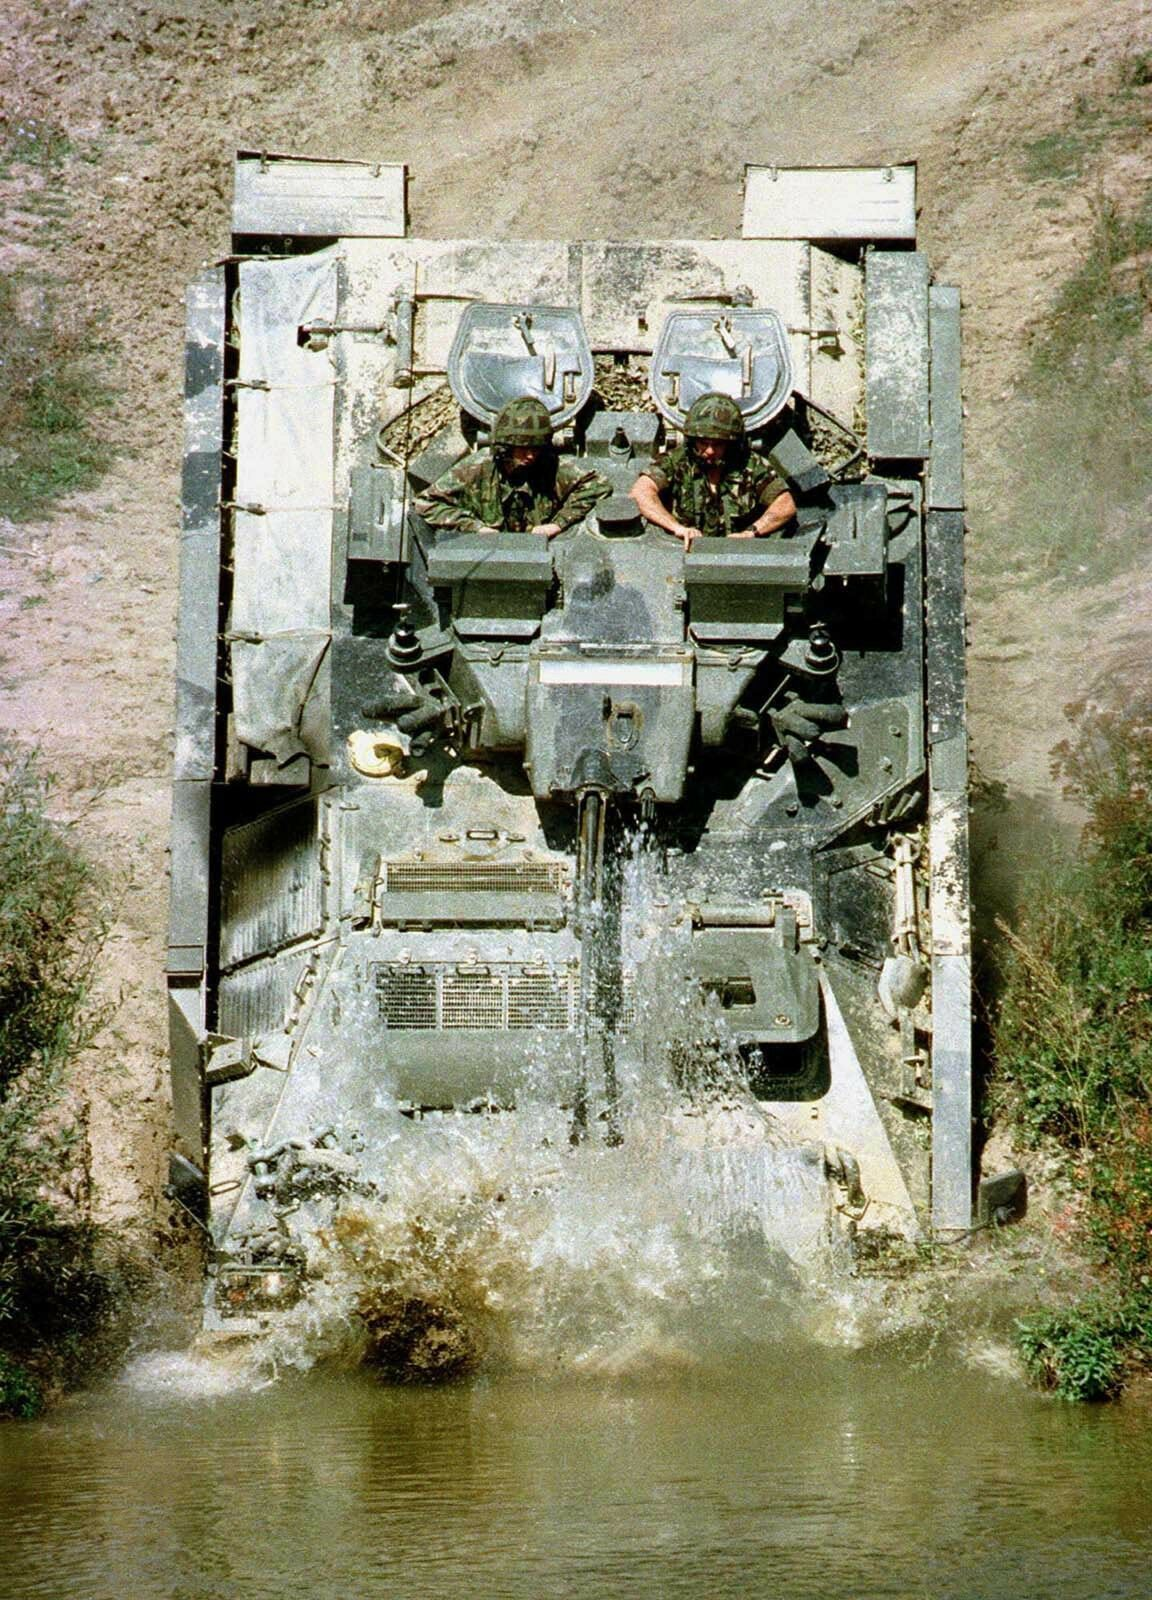 ARMY Warrior FV510 Armoured Personnel Carrier Photo Print